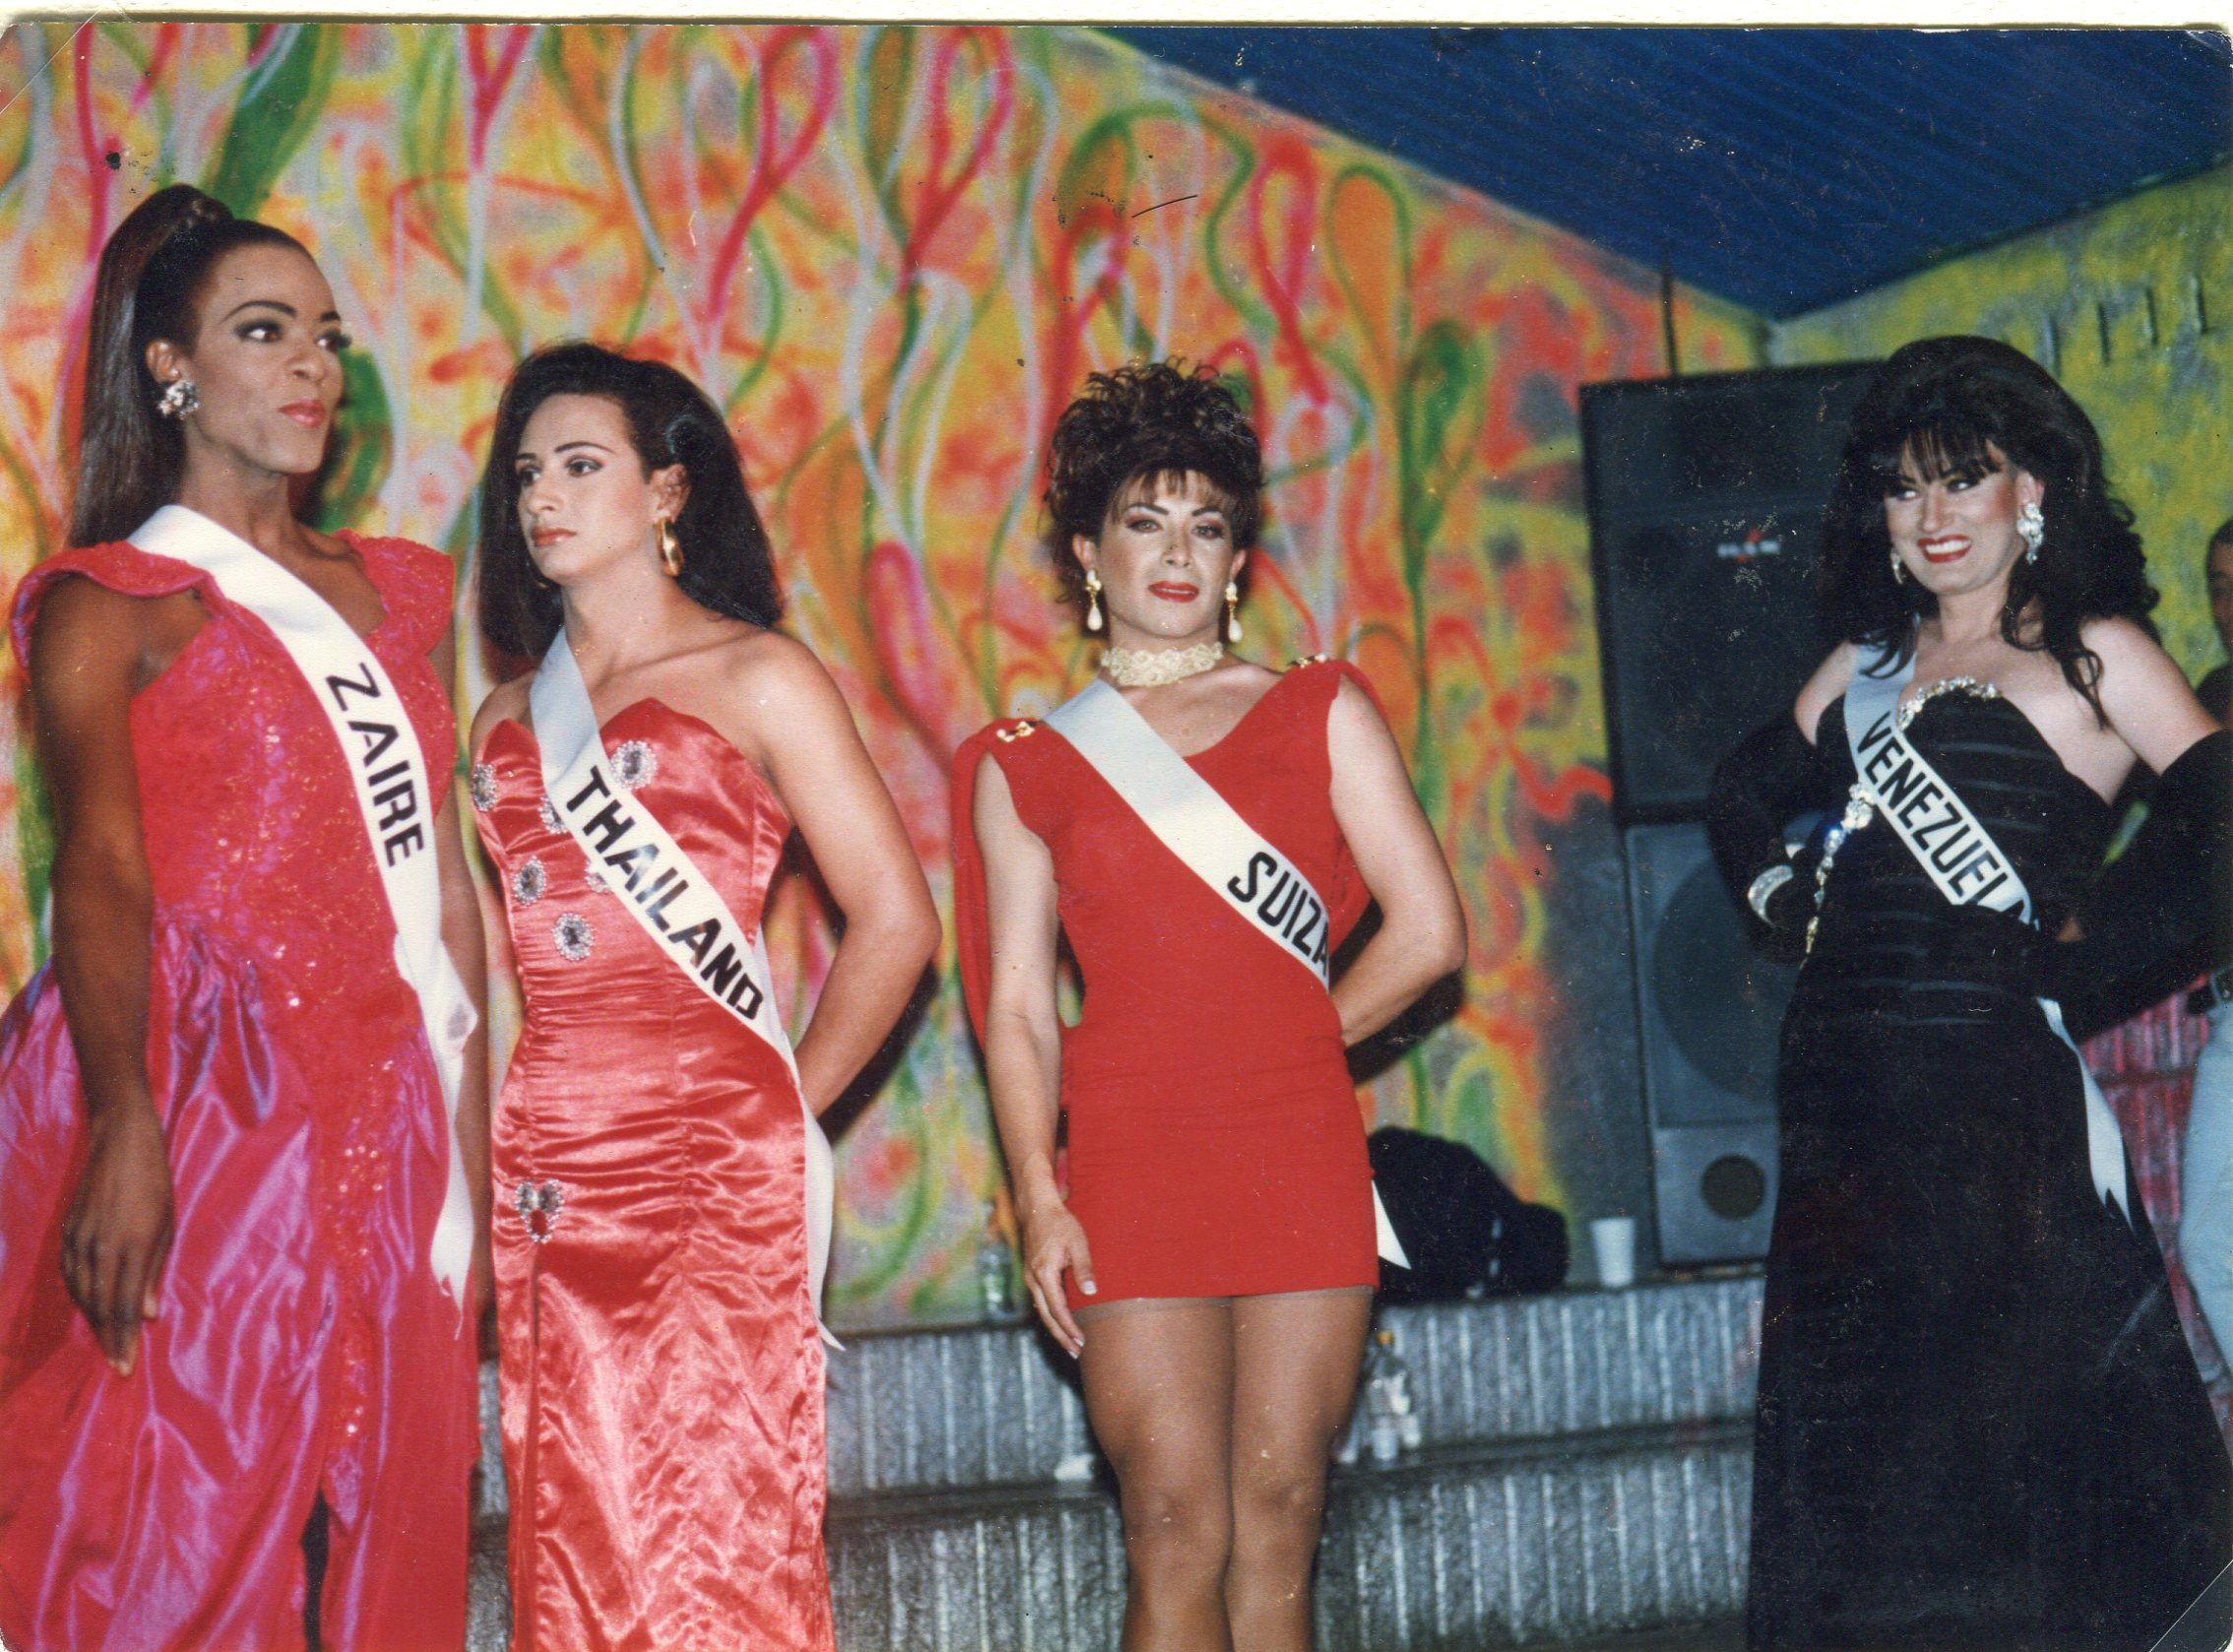 International Bambuco Trans Beauty Pageant. Courtesy of the Akrhé Foundation. From Halim Badawi's essay, Pink memories: The Archives of LGBTQ History